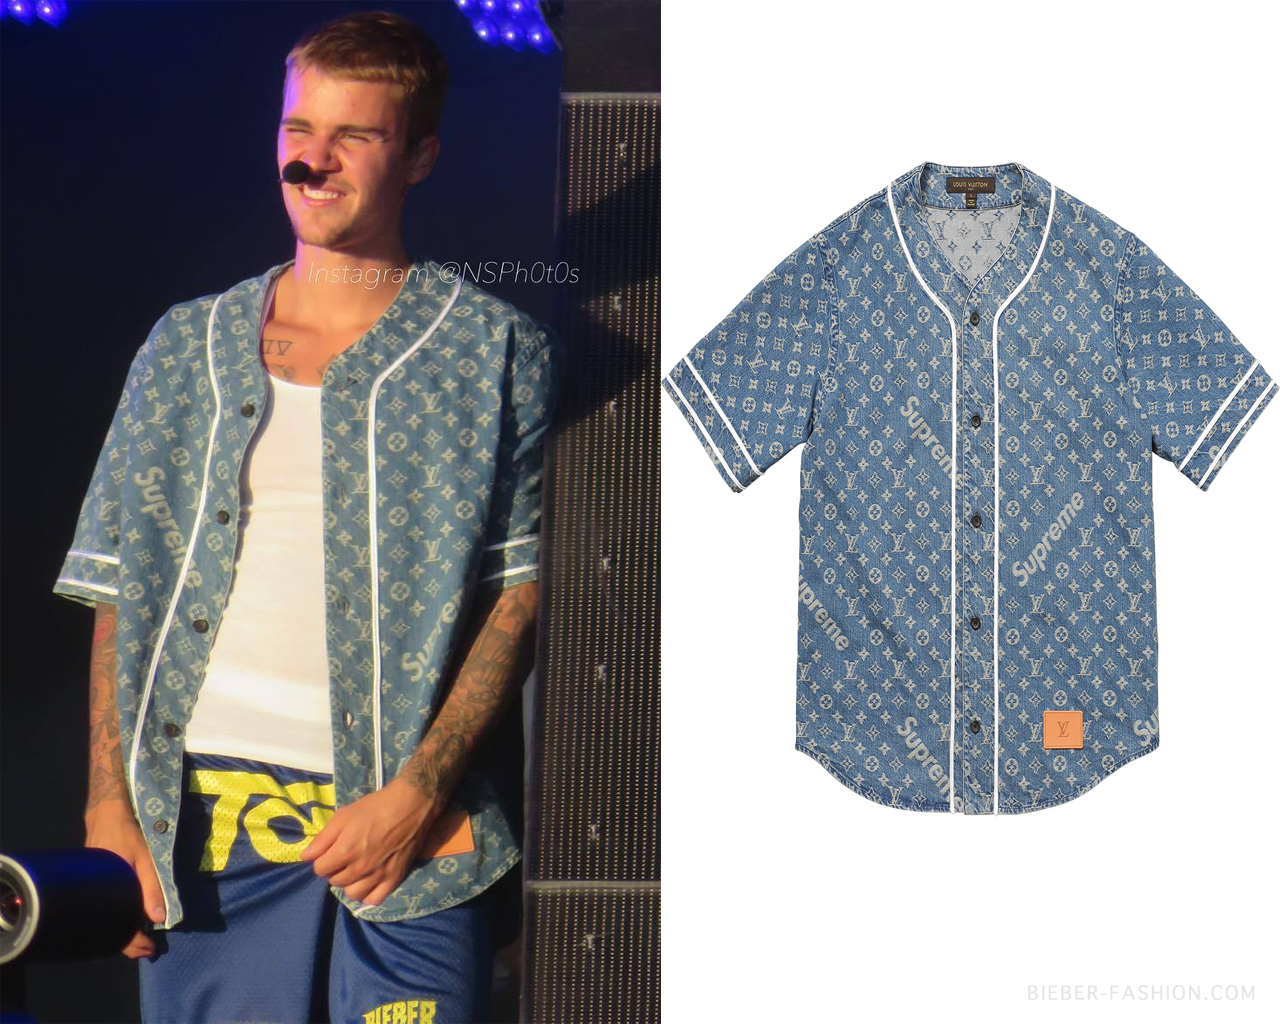 """28f02f086672fc bieber-fashion: """" Louis Vuitton/Supreme Jacquard Denim Baseball Jersey in  Blue - $790.00 Available at Louis Vuitton Pop-Up Stores """""""